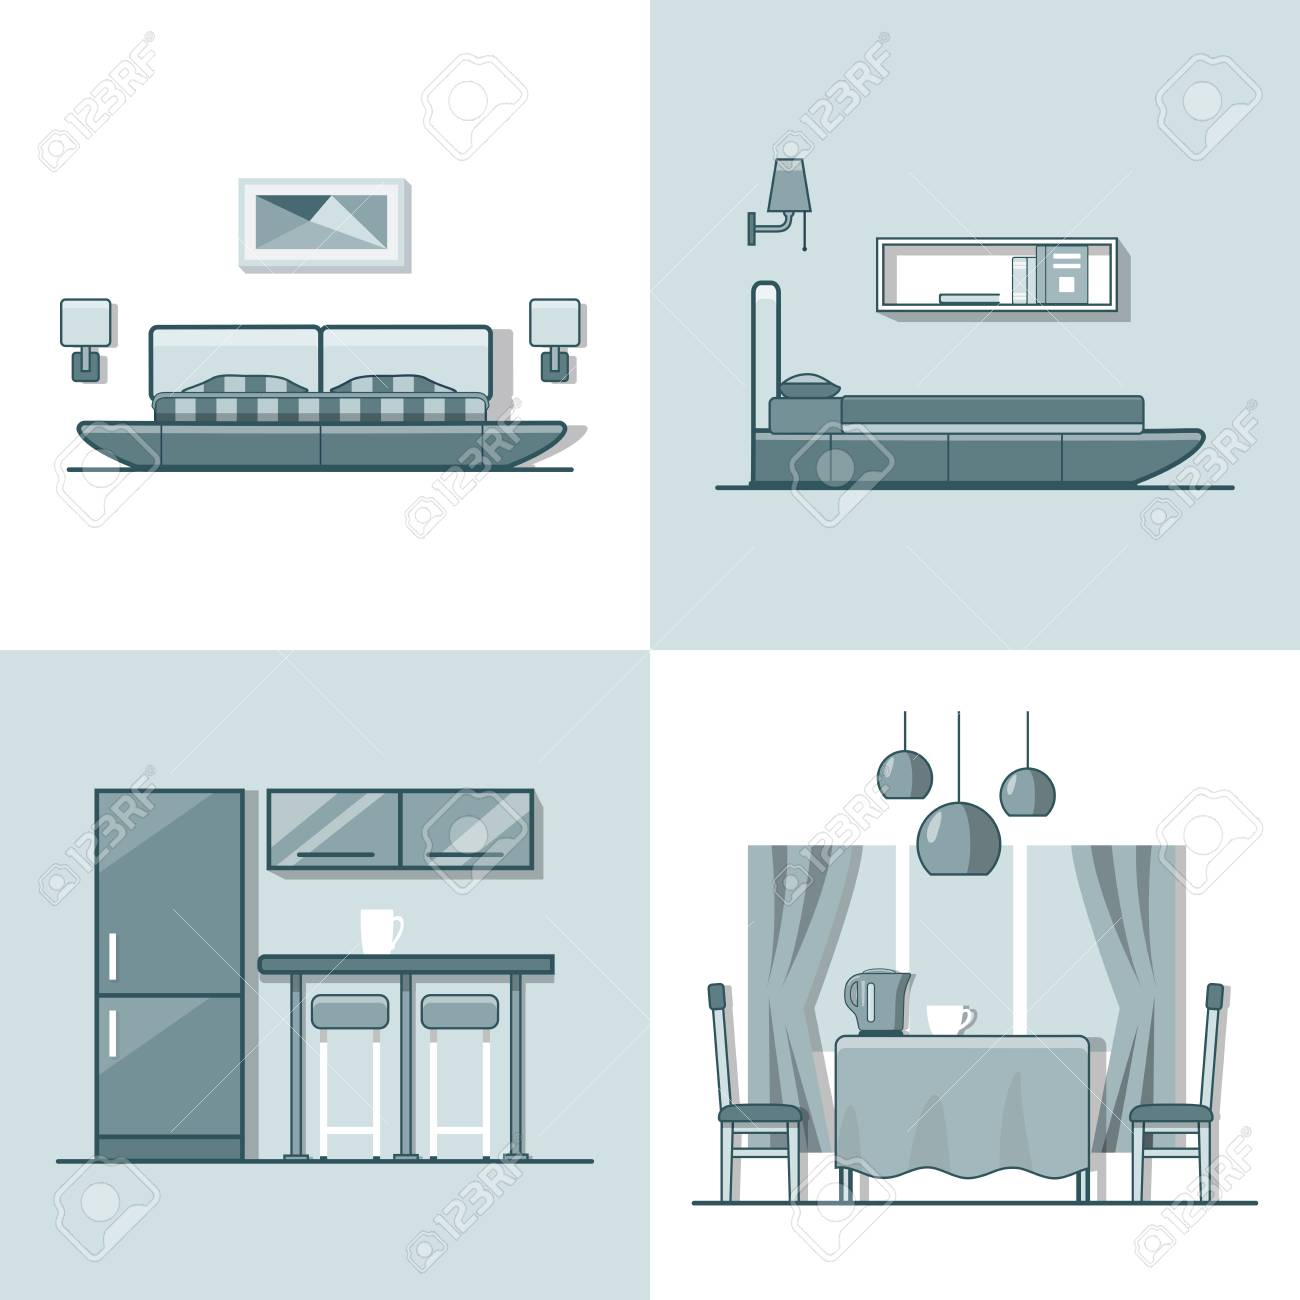 Bedroom kitchen living dining room interior indoor set. Linear monocolor stroke outline flat style vector icons. Color line art icon collection. - 57397926